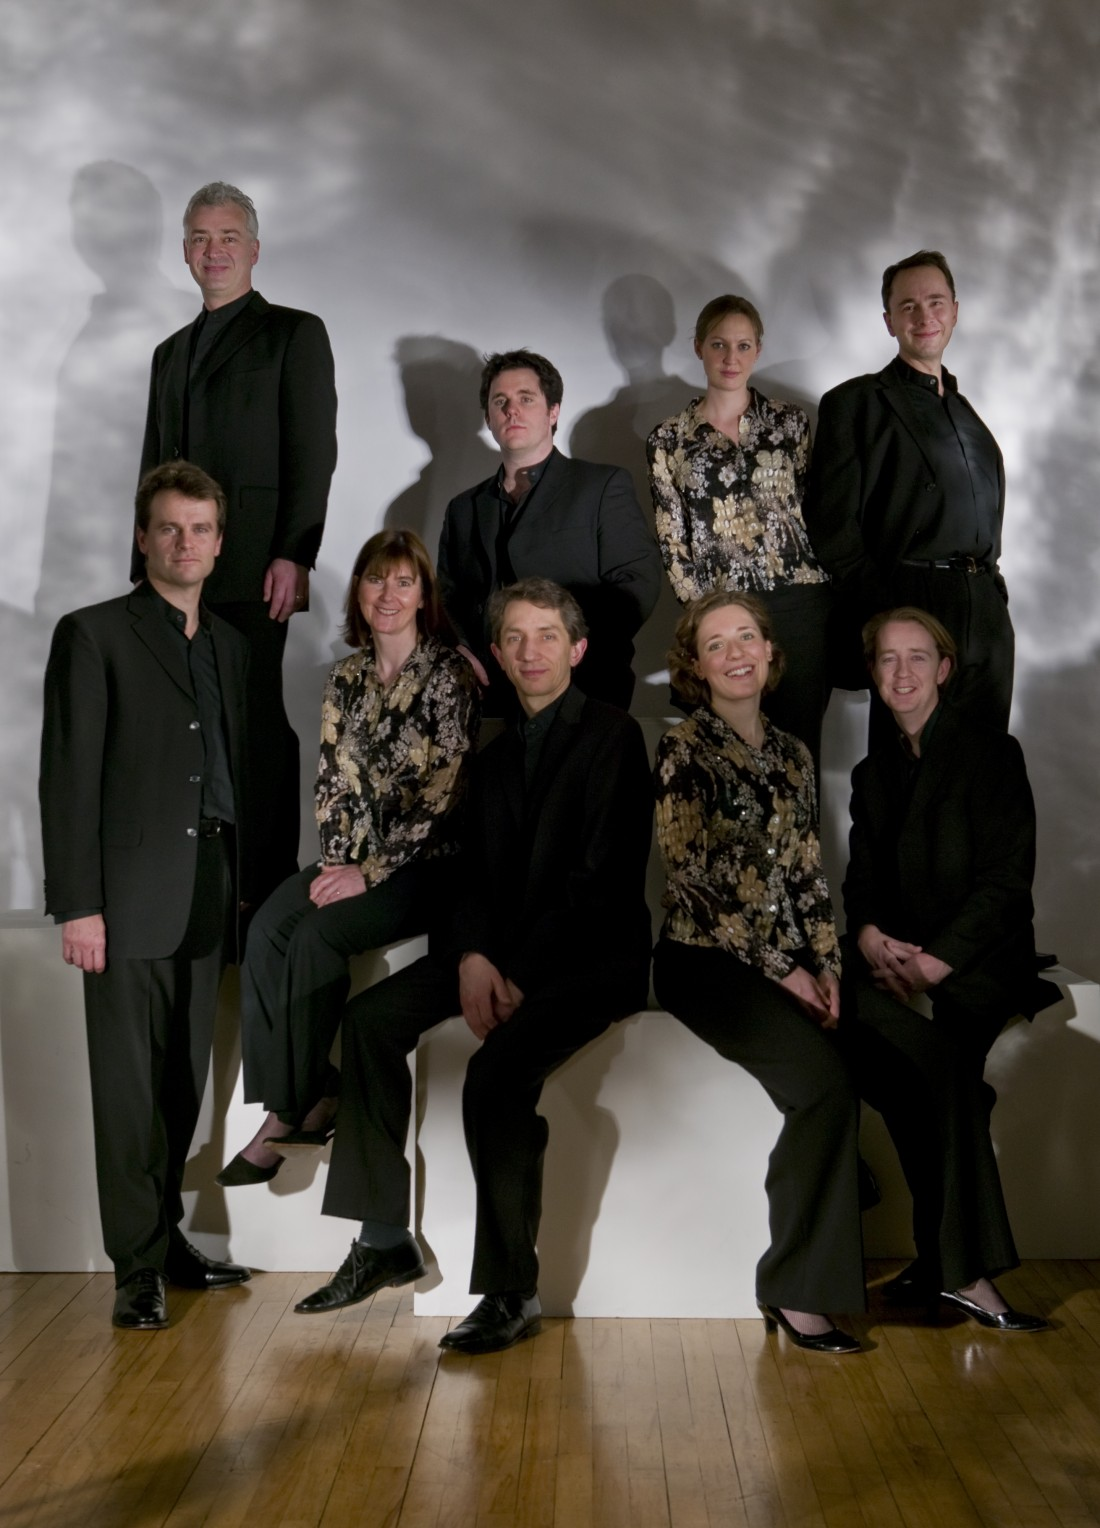 I Fagiolini perform on 30 January 2014 at The Great Hall, Lancaster University.